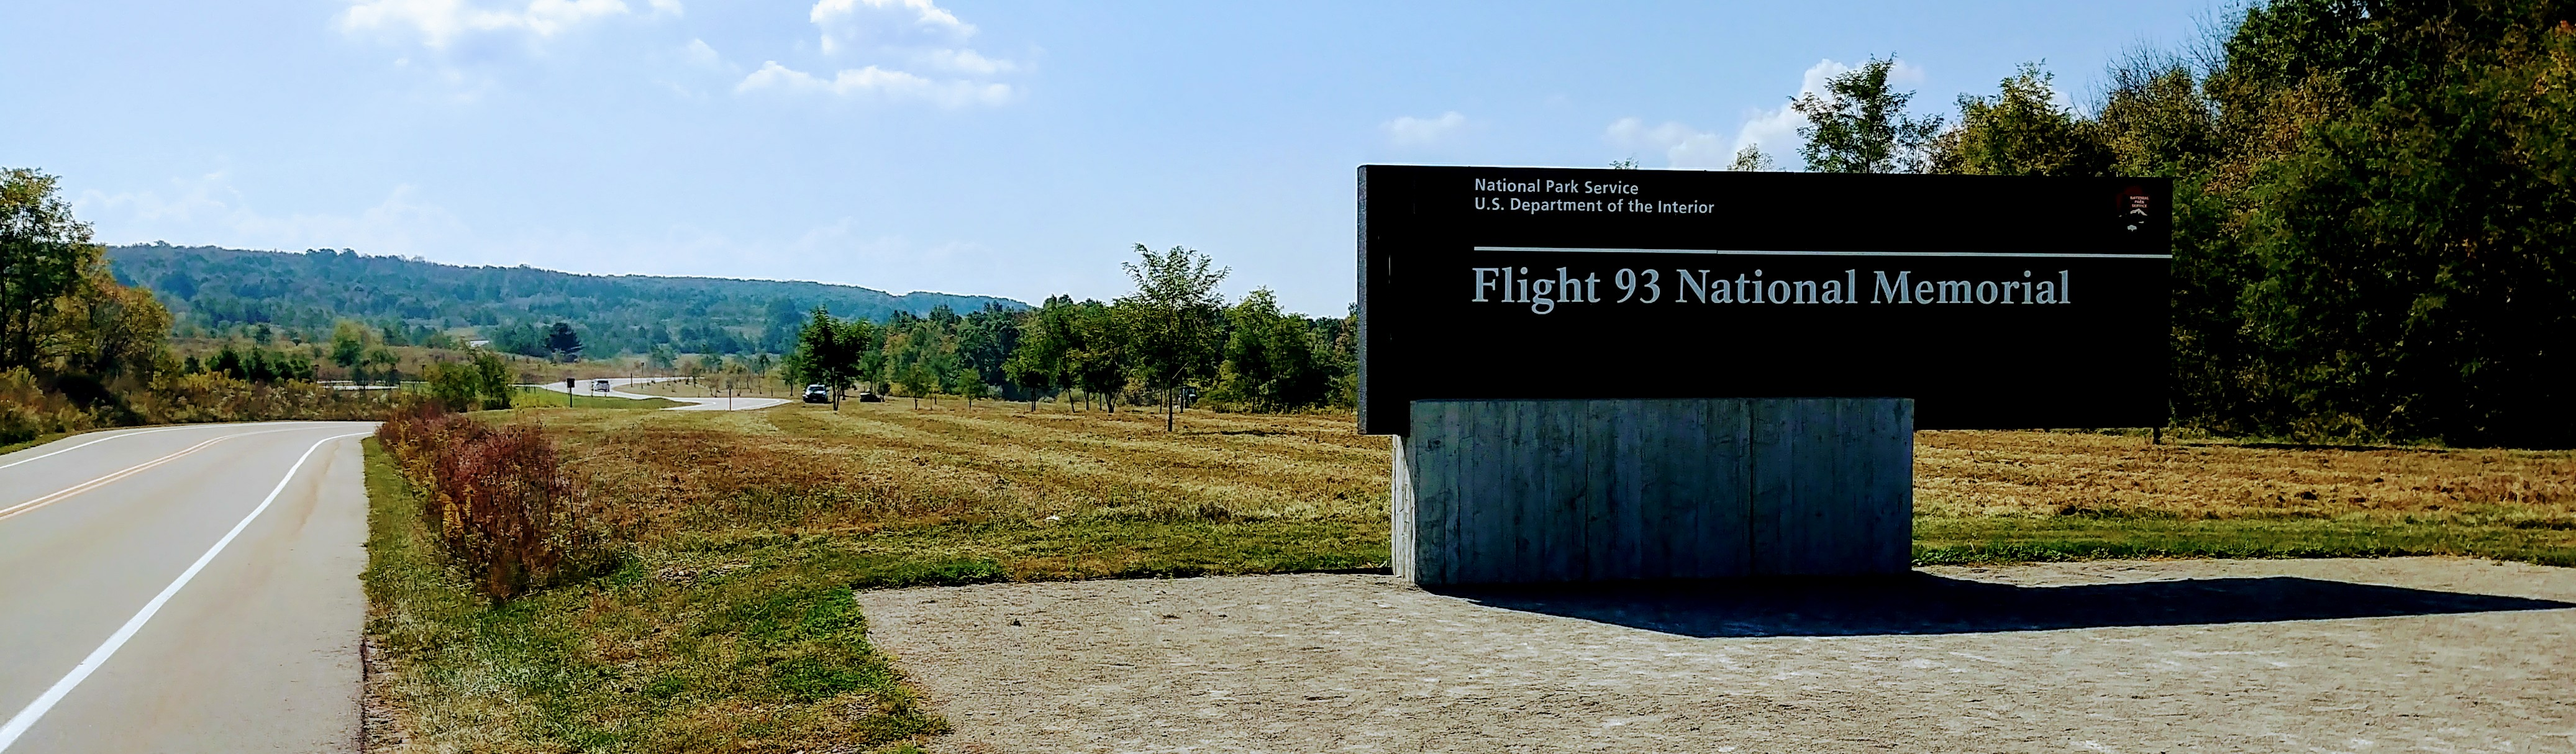 Inngangen til Flight 93 National Memorial i Somerset County. foto: Monumentmike / CC BY-SA